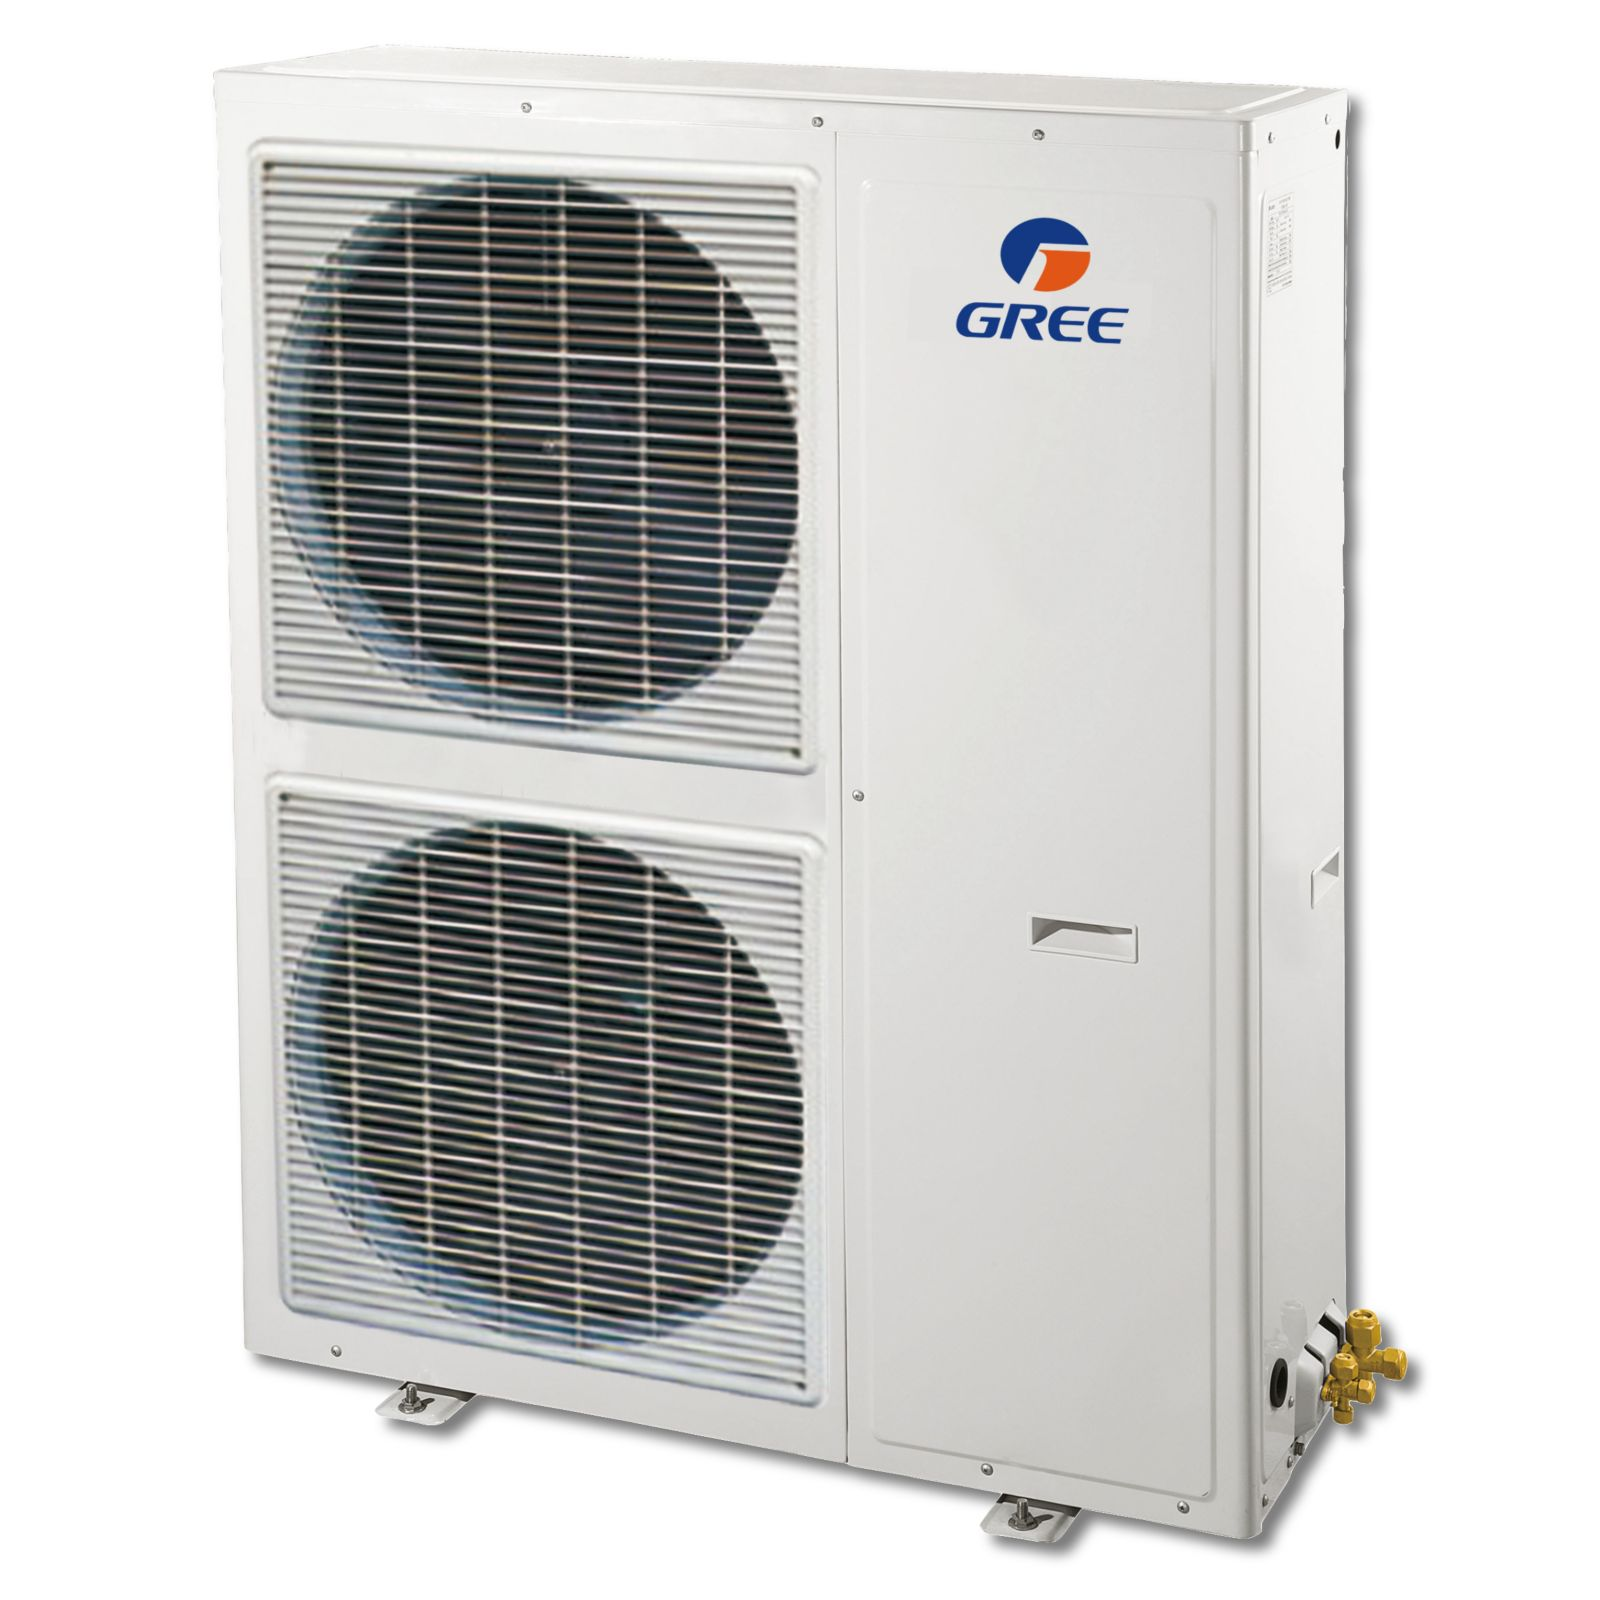 GREE UMAT42HP230V1AO - U-Match 42,000 BTU/h, 16 SEER  Inverter Heat Pump Condensing Unit, 208-230 Volt, 60 Hz